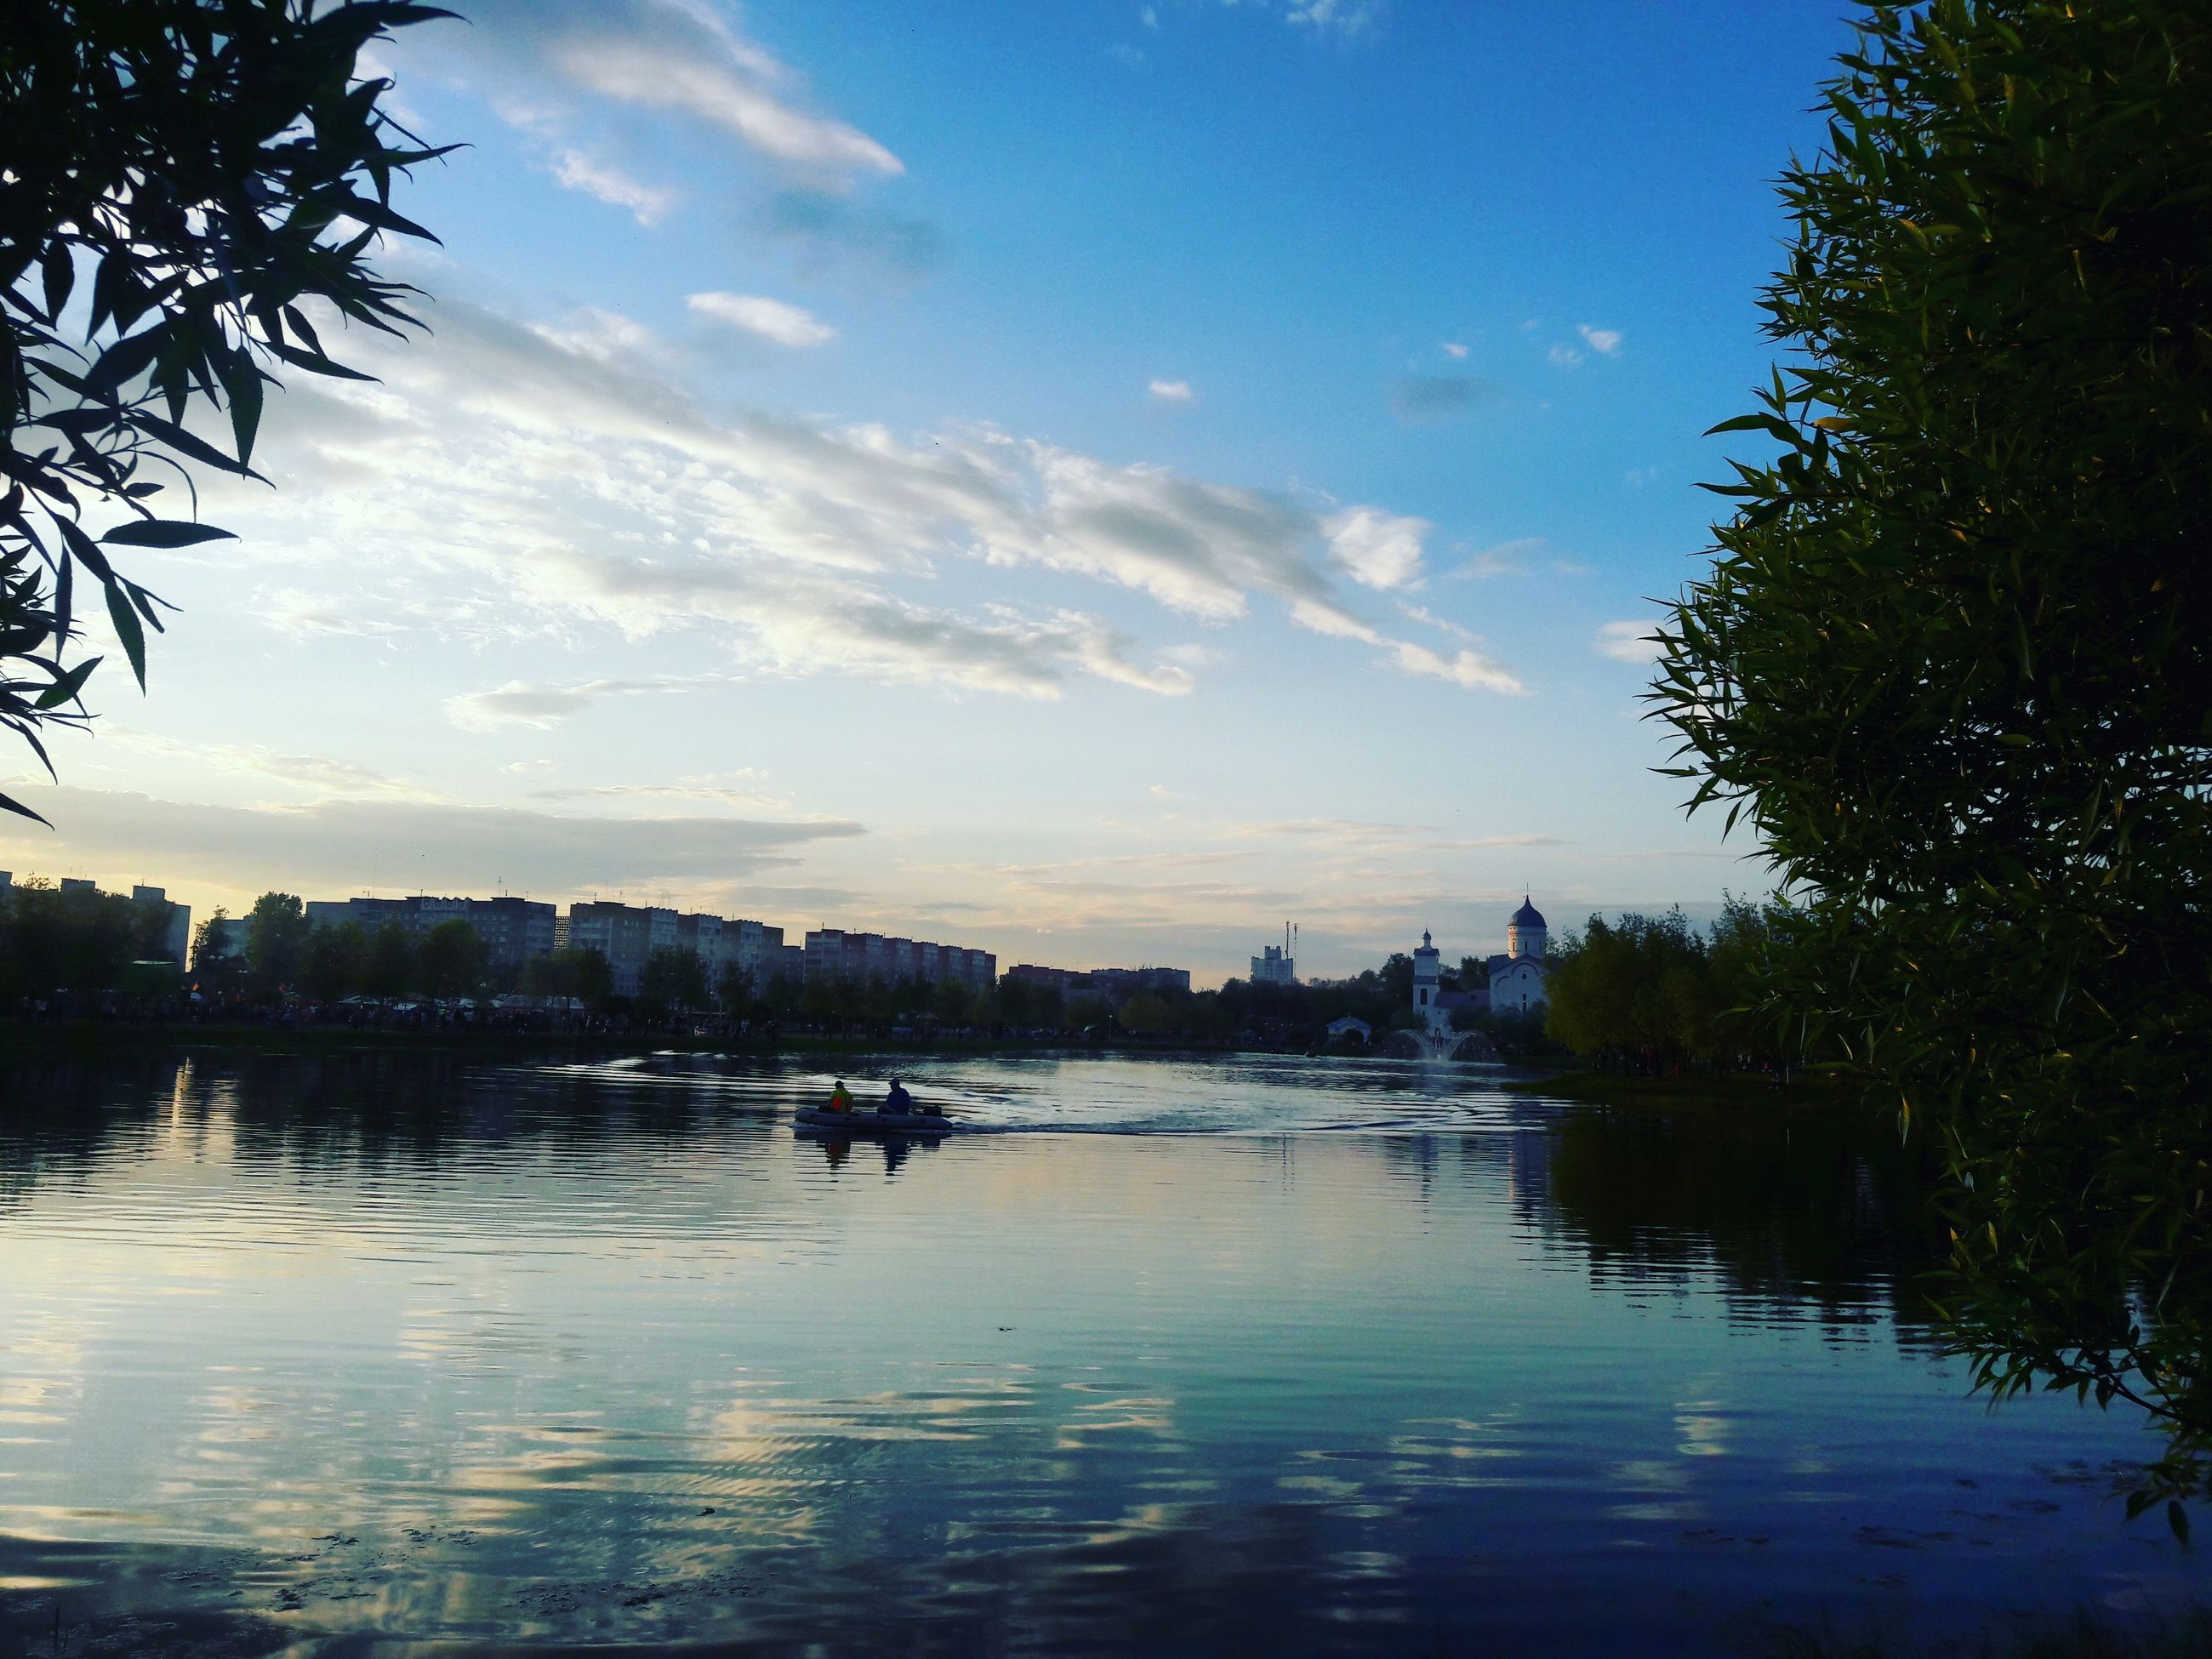 water, sky, tree, lake, reflection, waterfront, cloud - sky, tranquility, tranquil scene, cloud, scenics, river, silhouette, sunset, nature, beauty in nature, outdoors, blue, idyllic, sunlight